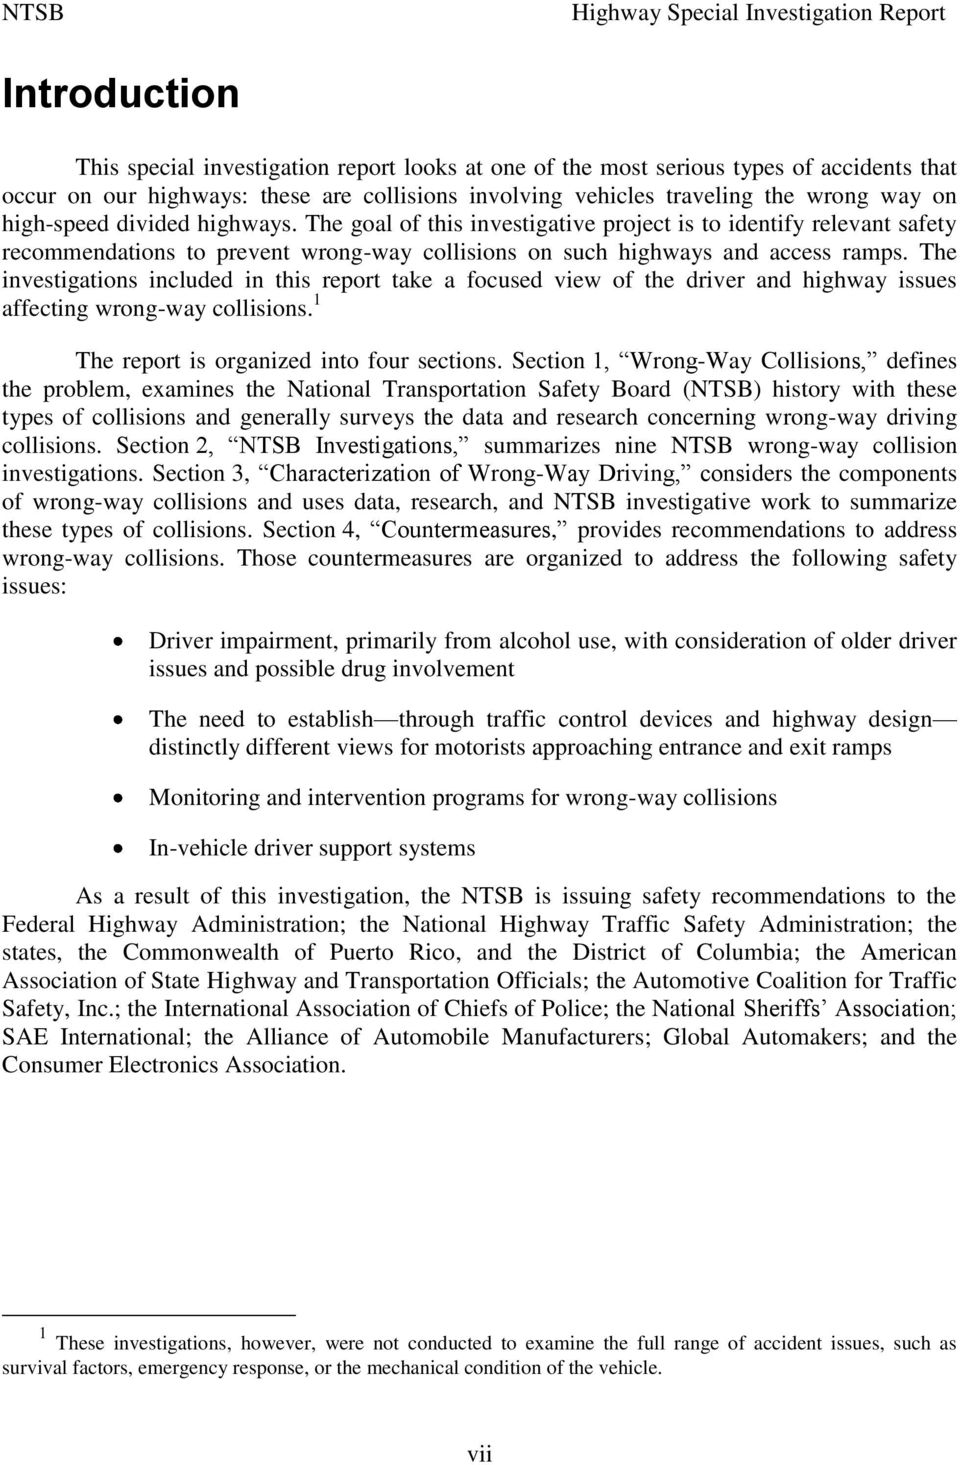 The investigations included in this report take a focused view of the driver and highway issues affecting wrong-way collisions. 1 The report is organized into four sections.